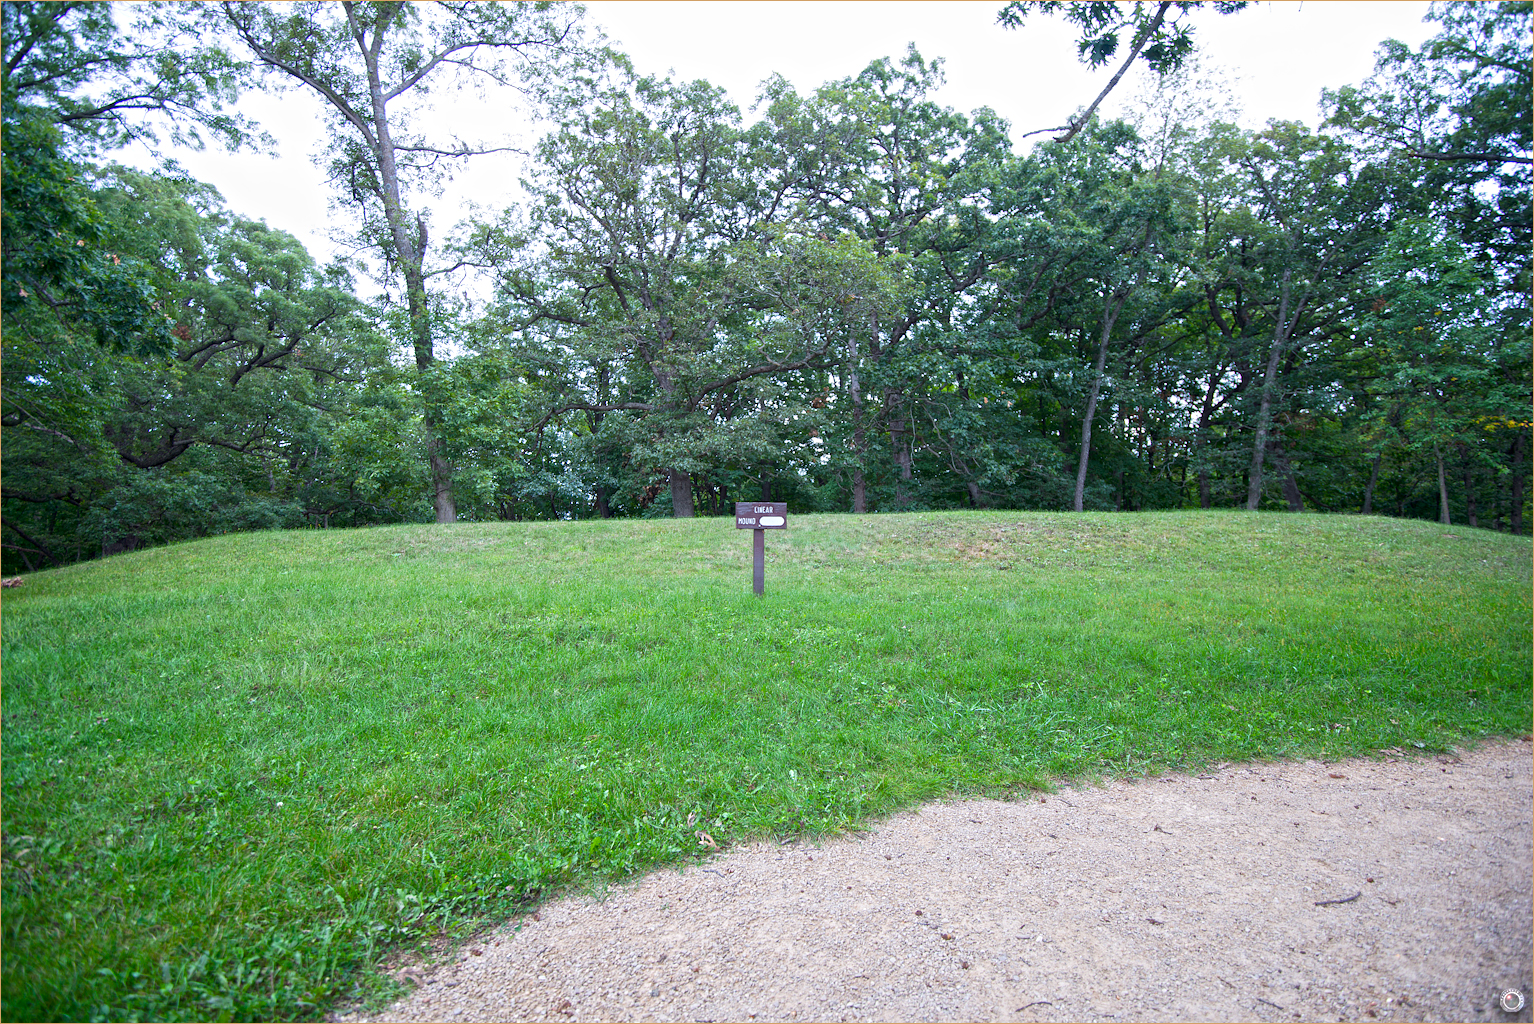 171 Wyalusing State Park Linear Mound